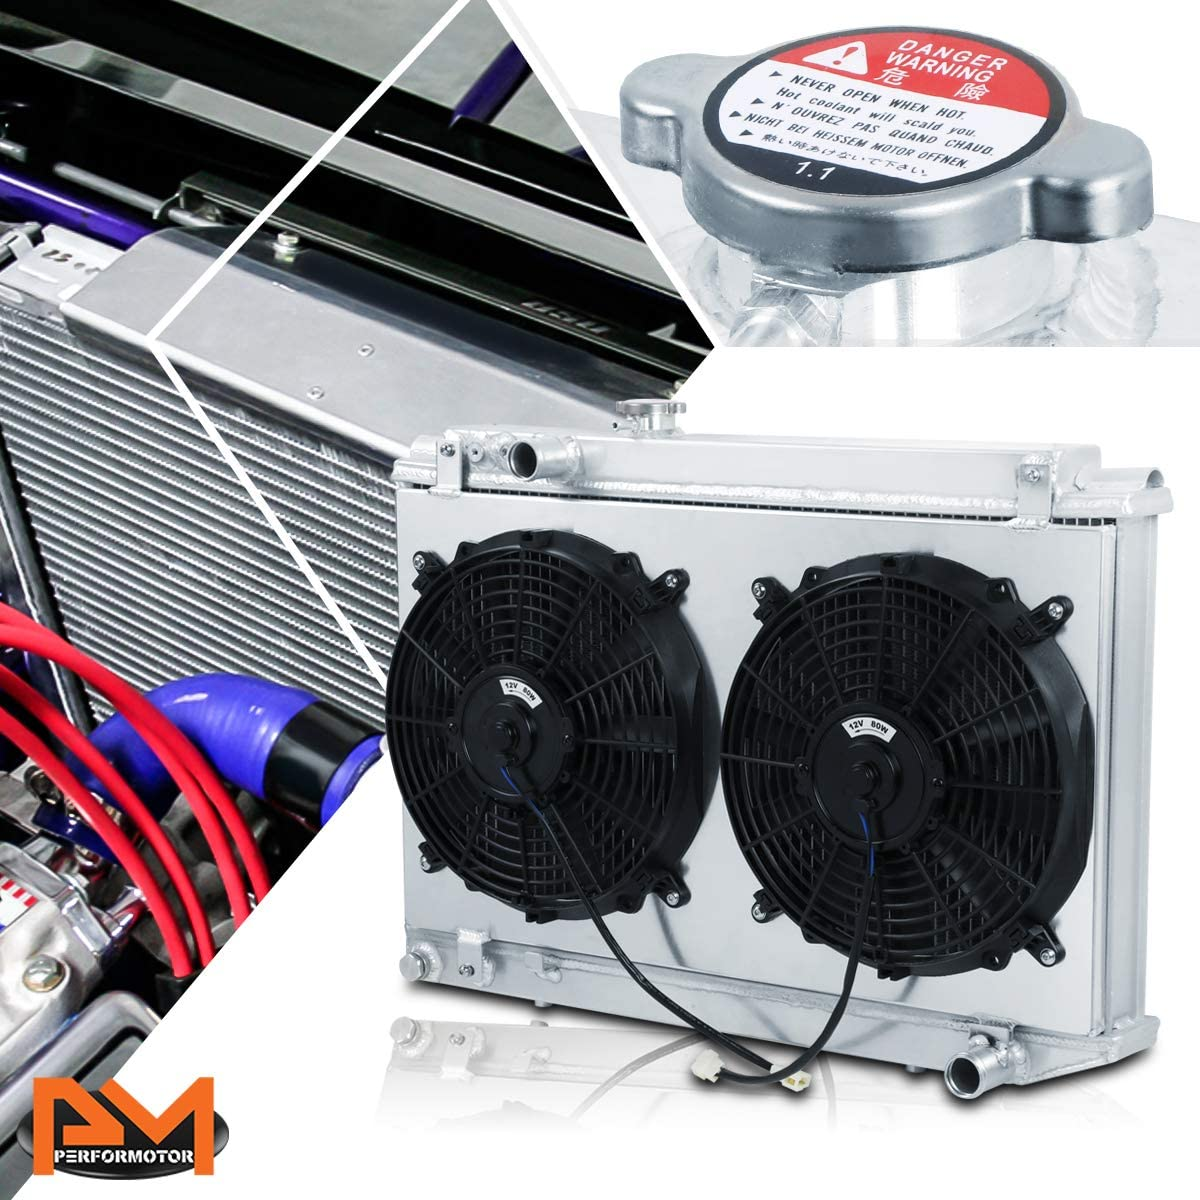 For Supra A70 7M-GTE 86-92 Aluminum Tri-Core 3-Row Cooling Radiator with Fan Shroud